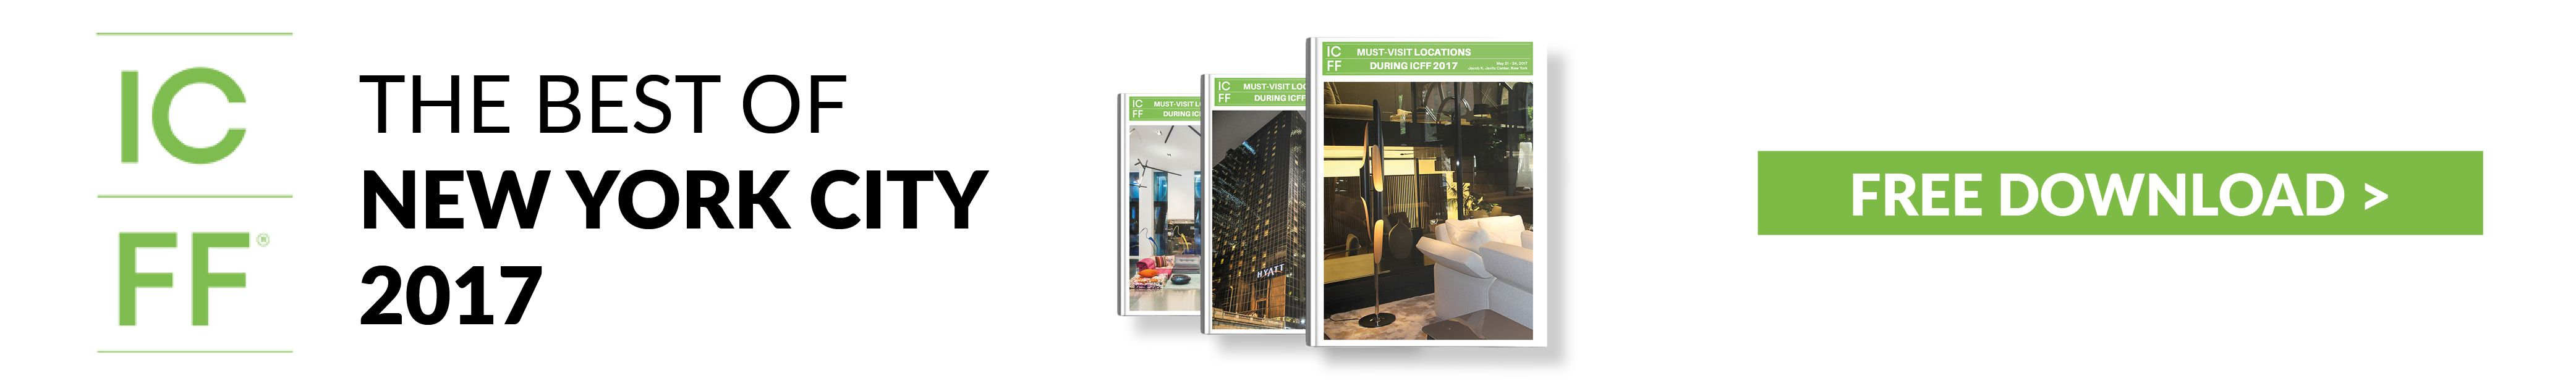 icff ICFF – NY Designs spots to boost your inspirations ICFF1 banner home